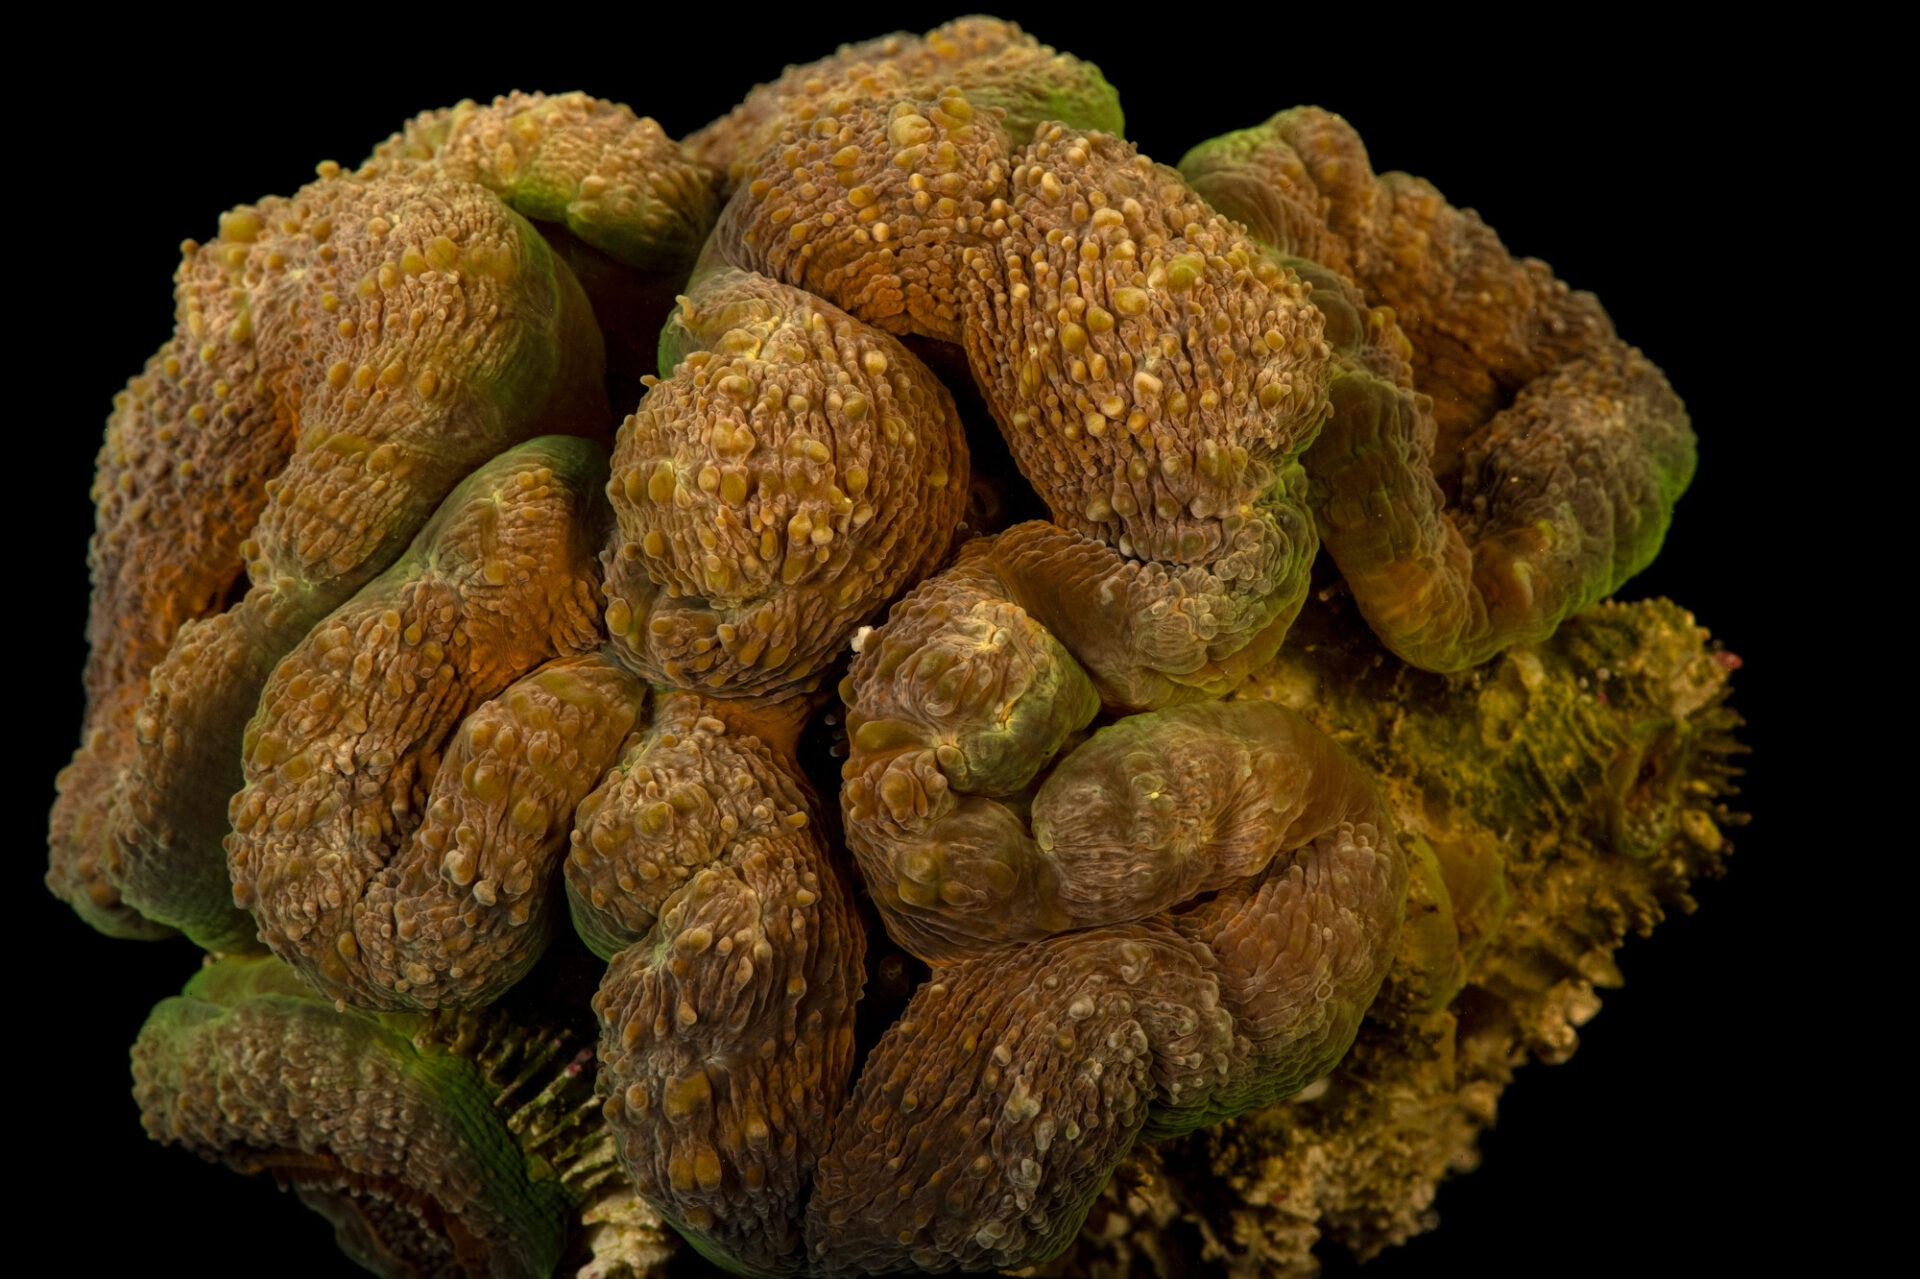 Photo: Lobed brain coral (Lobophyllia hemprichii) from a private collection in Saint Louis.